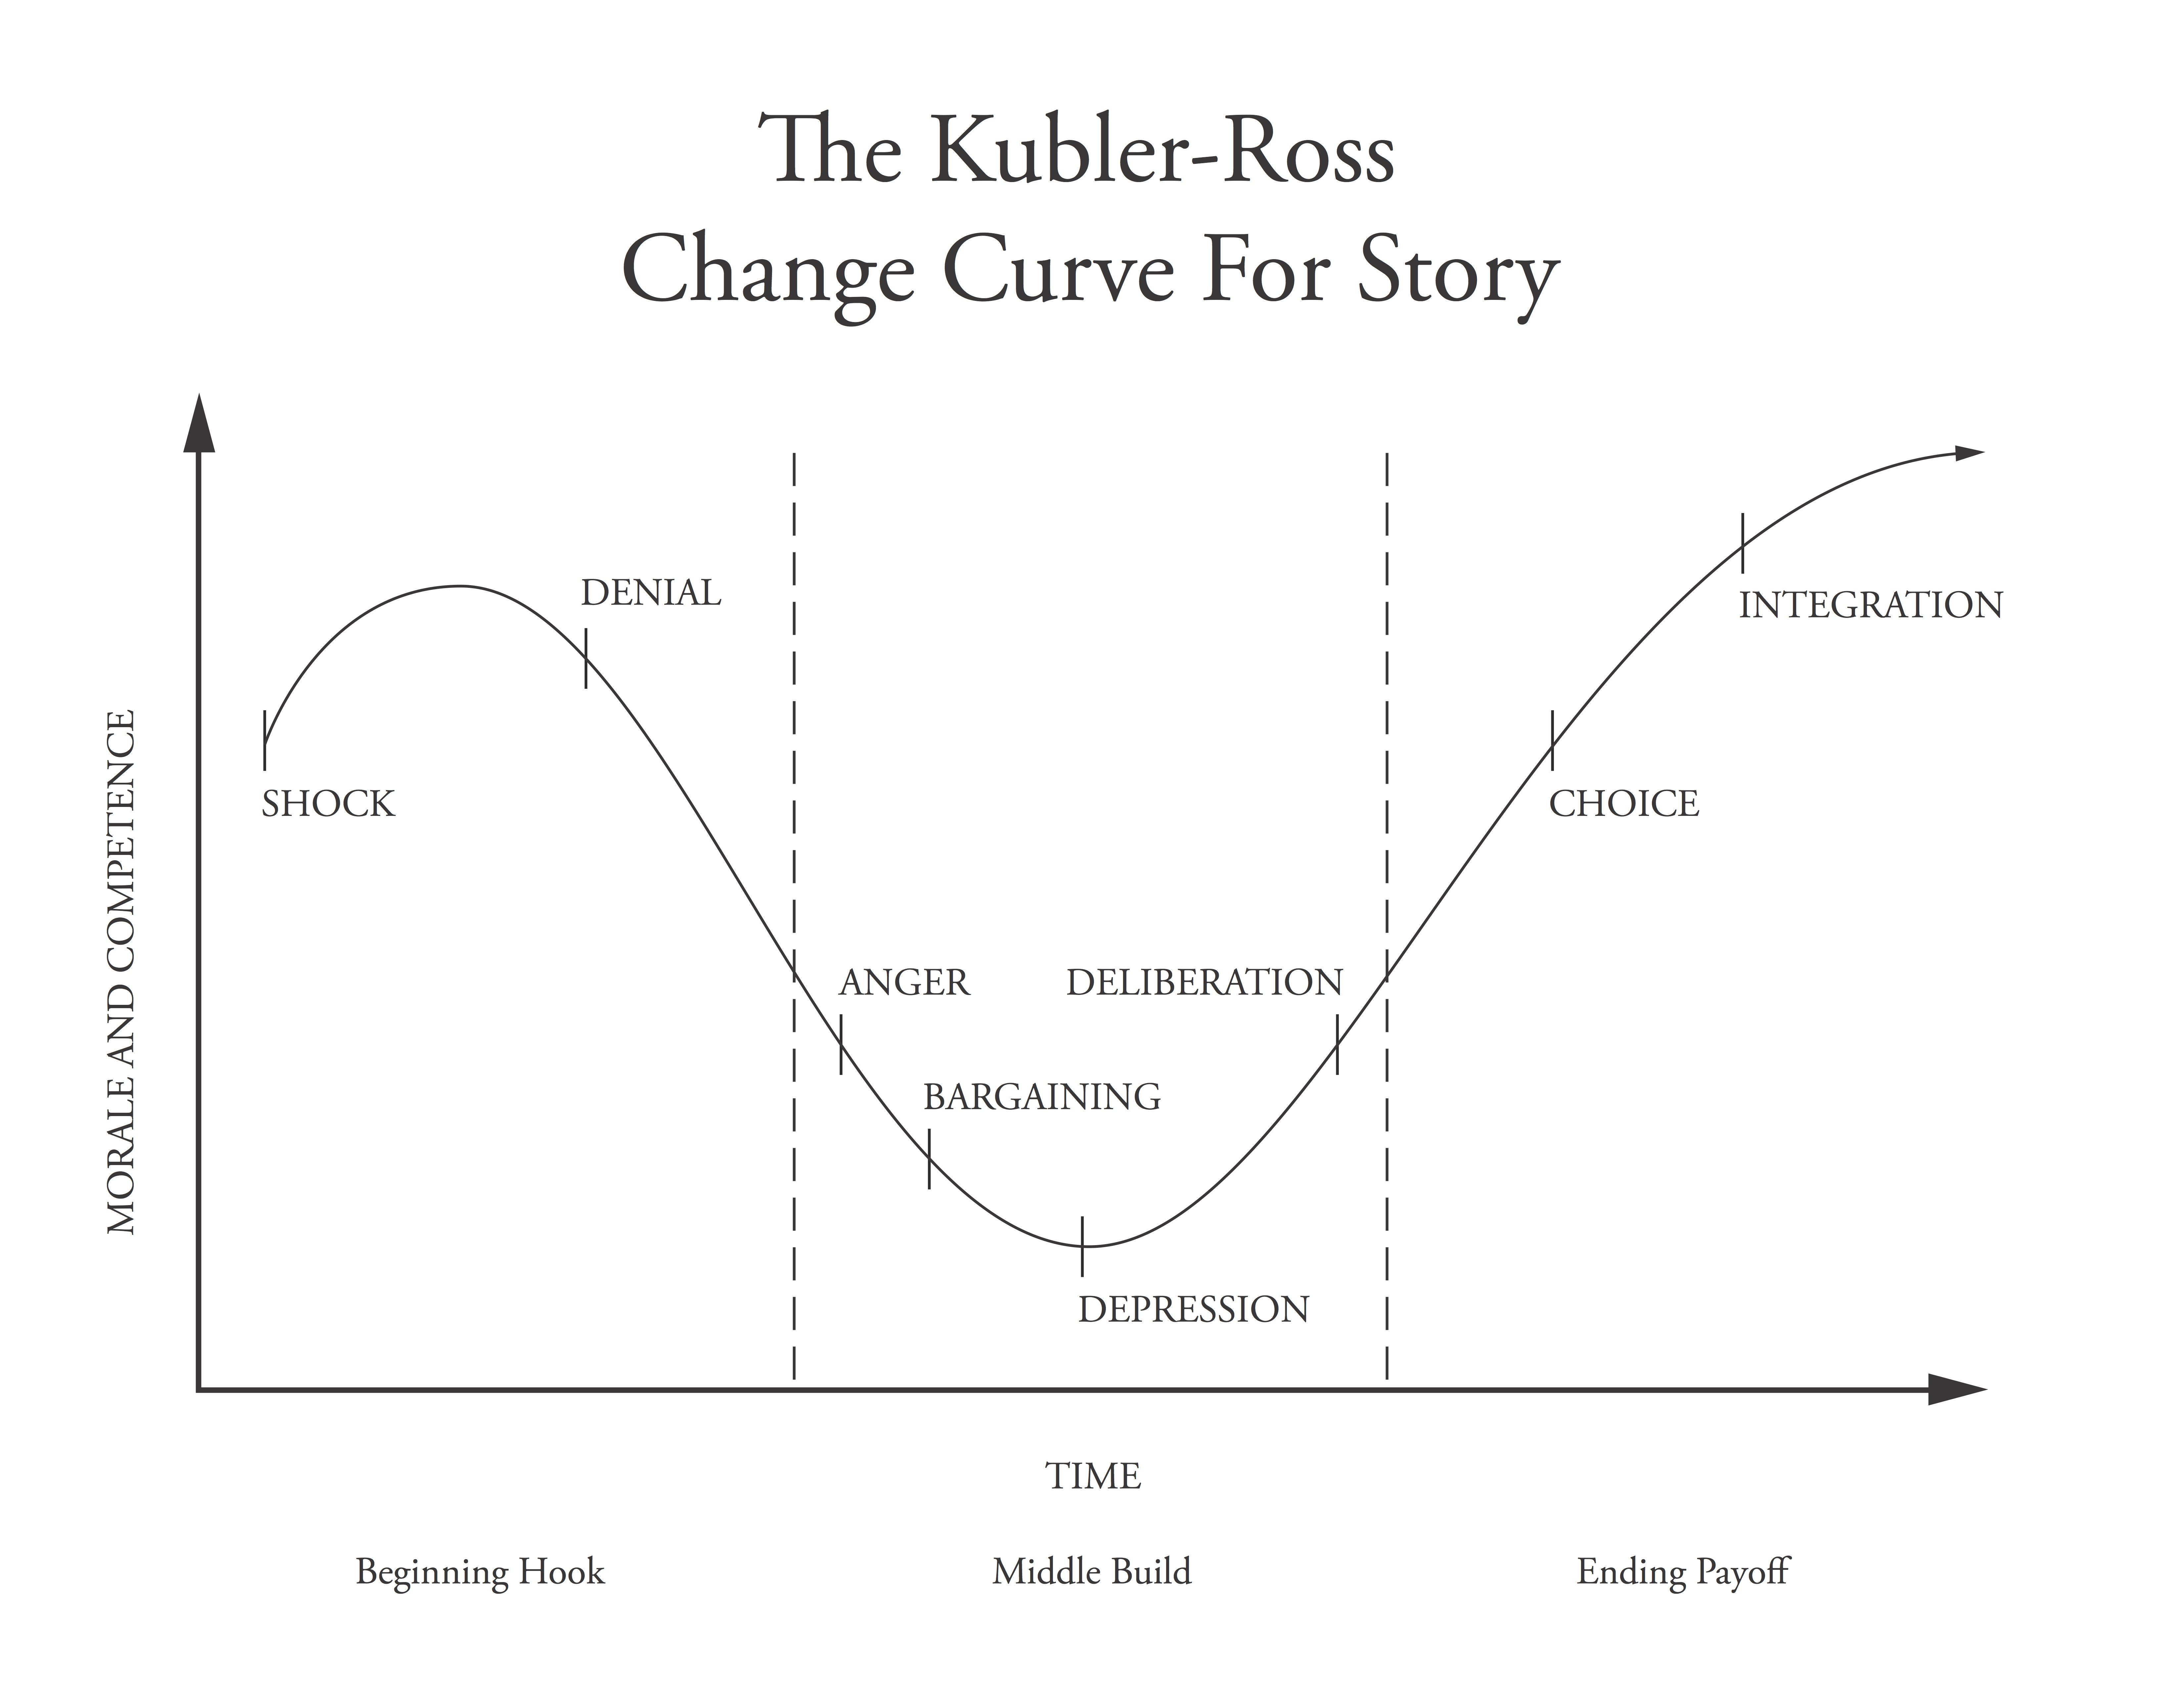 Kubler Ross Change Curve For Story